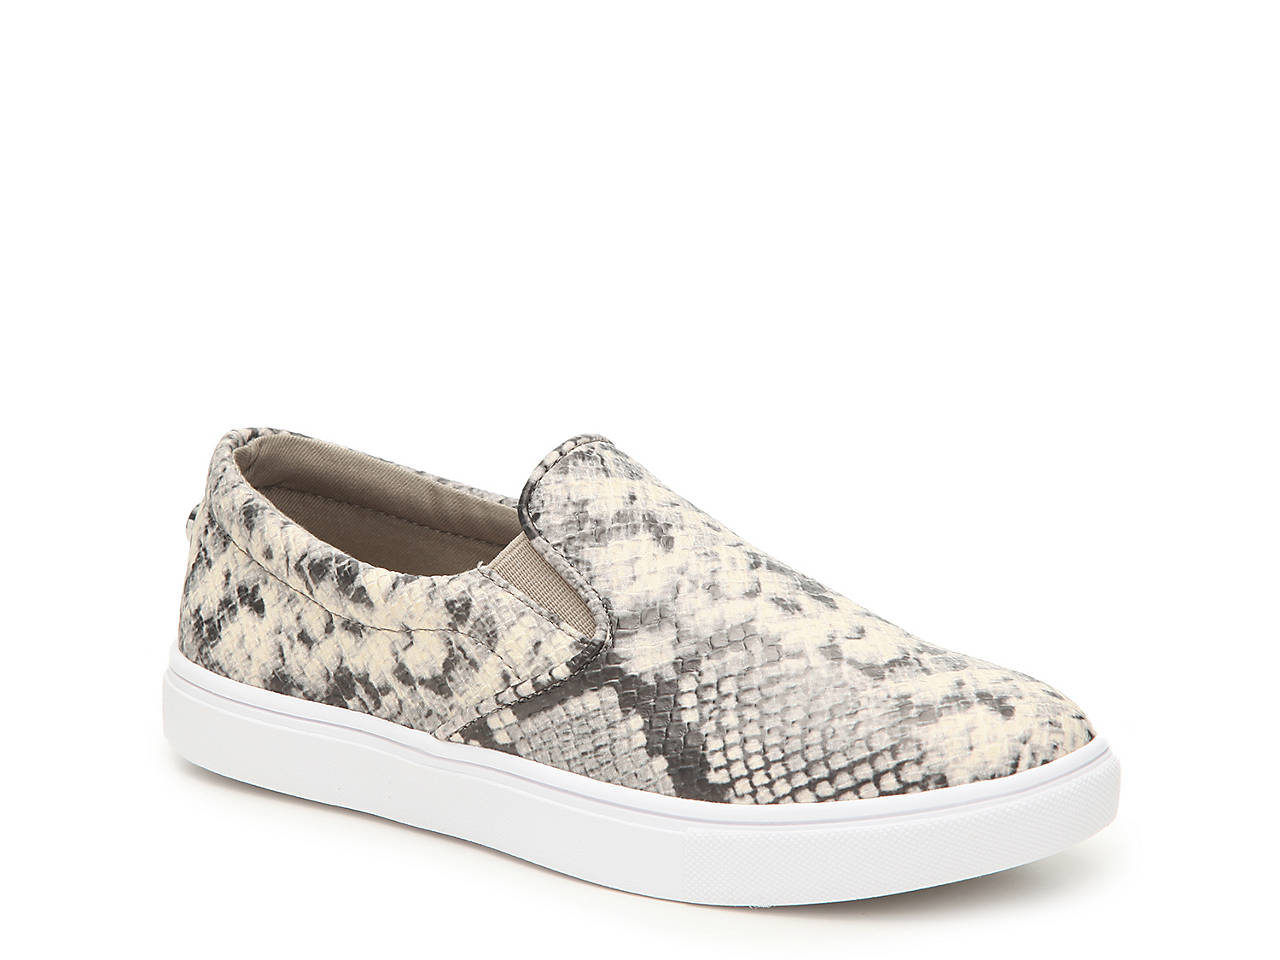 05f8c5031ba6 Steve Madden Ecentrc Slip-On Sneaker Women s Shoes